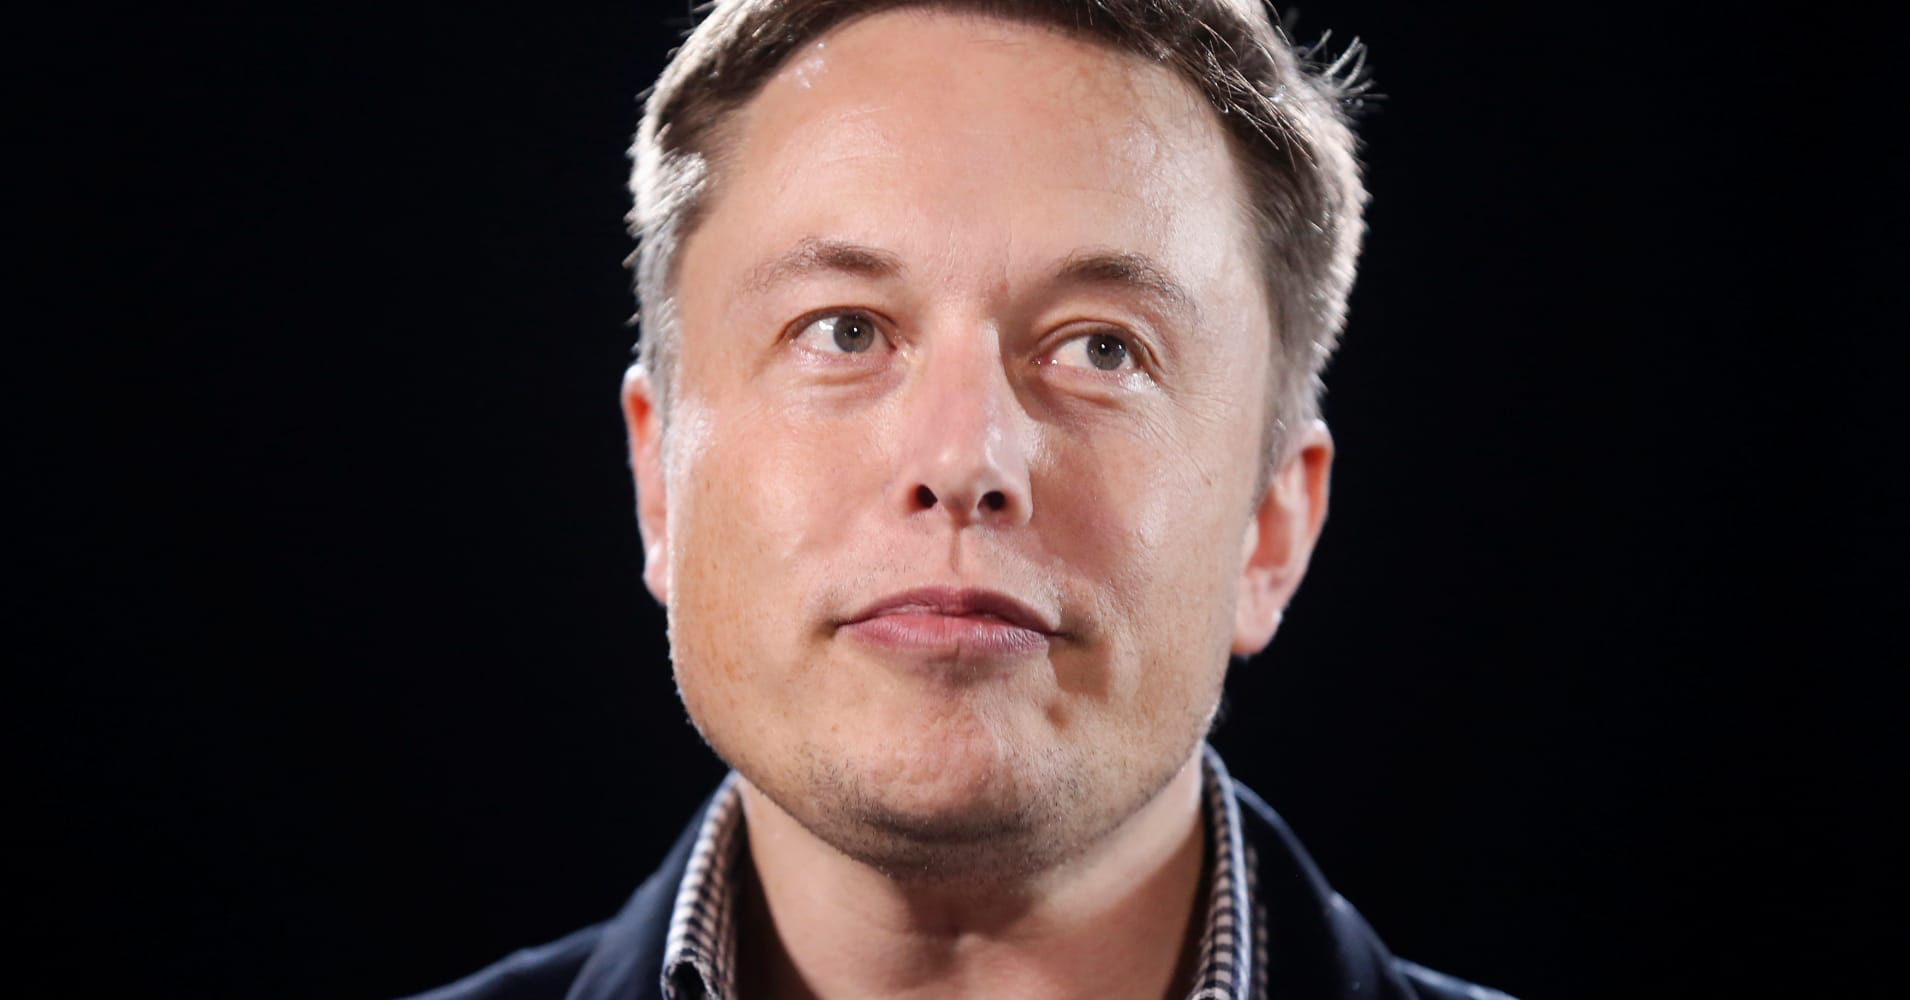 Elon Musk looking at the camera: Cryptocurrency Dogecoin surged more than 50% on Thursday after billionaire entrepreneur Elon Musk tweeted his support for it, two days after he said he was to take a break from Twitter